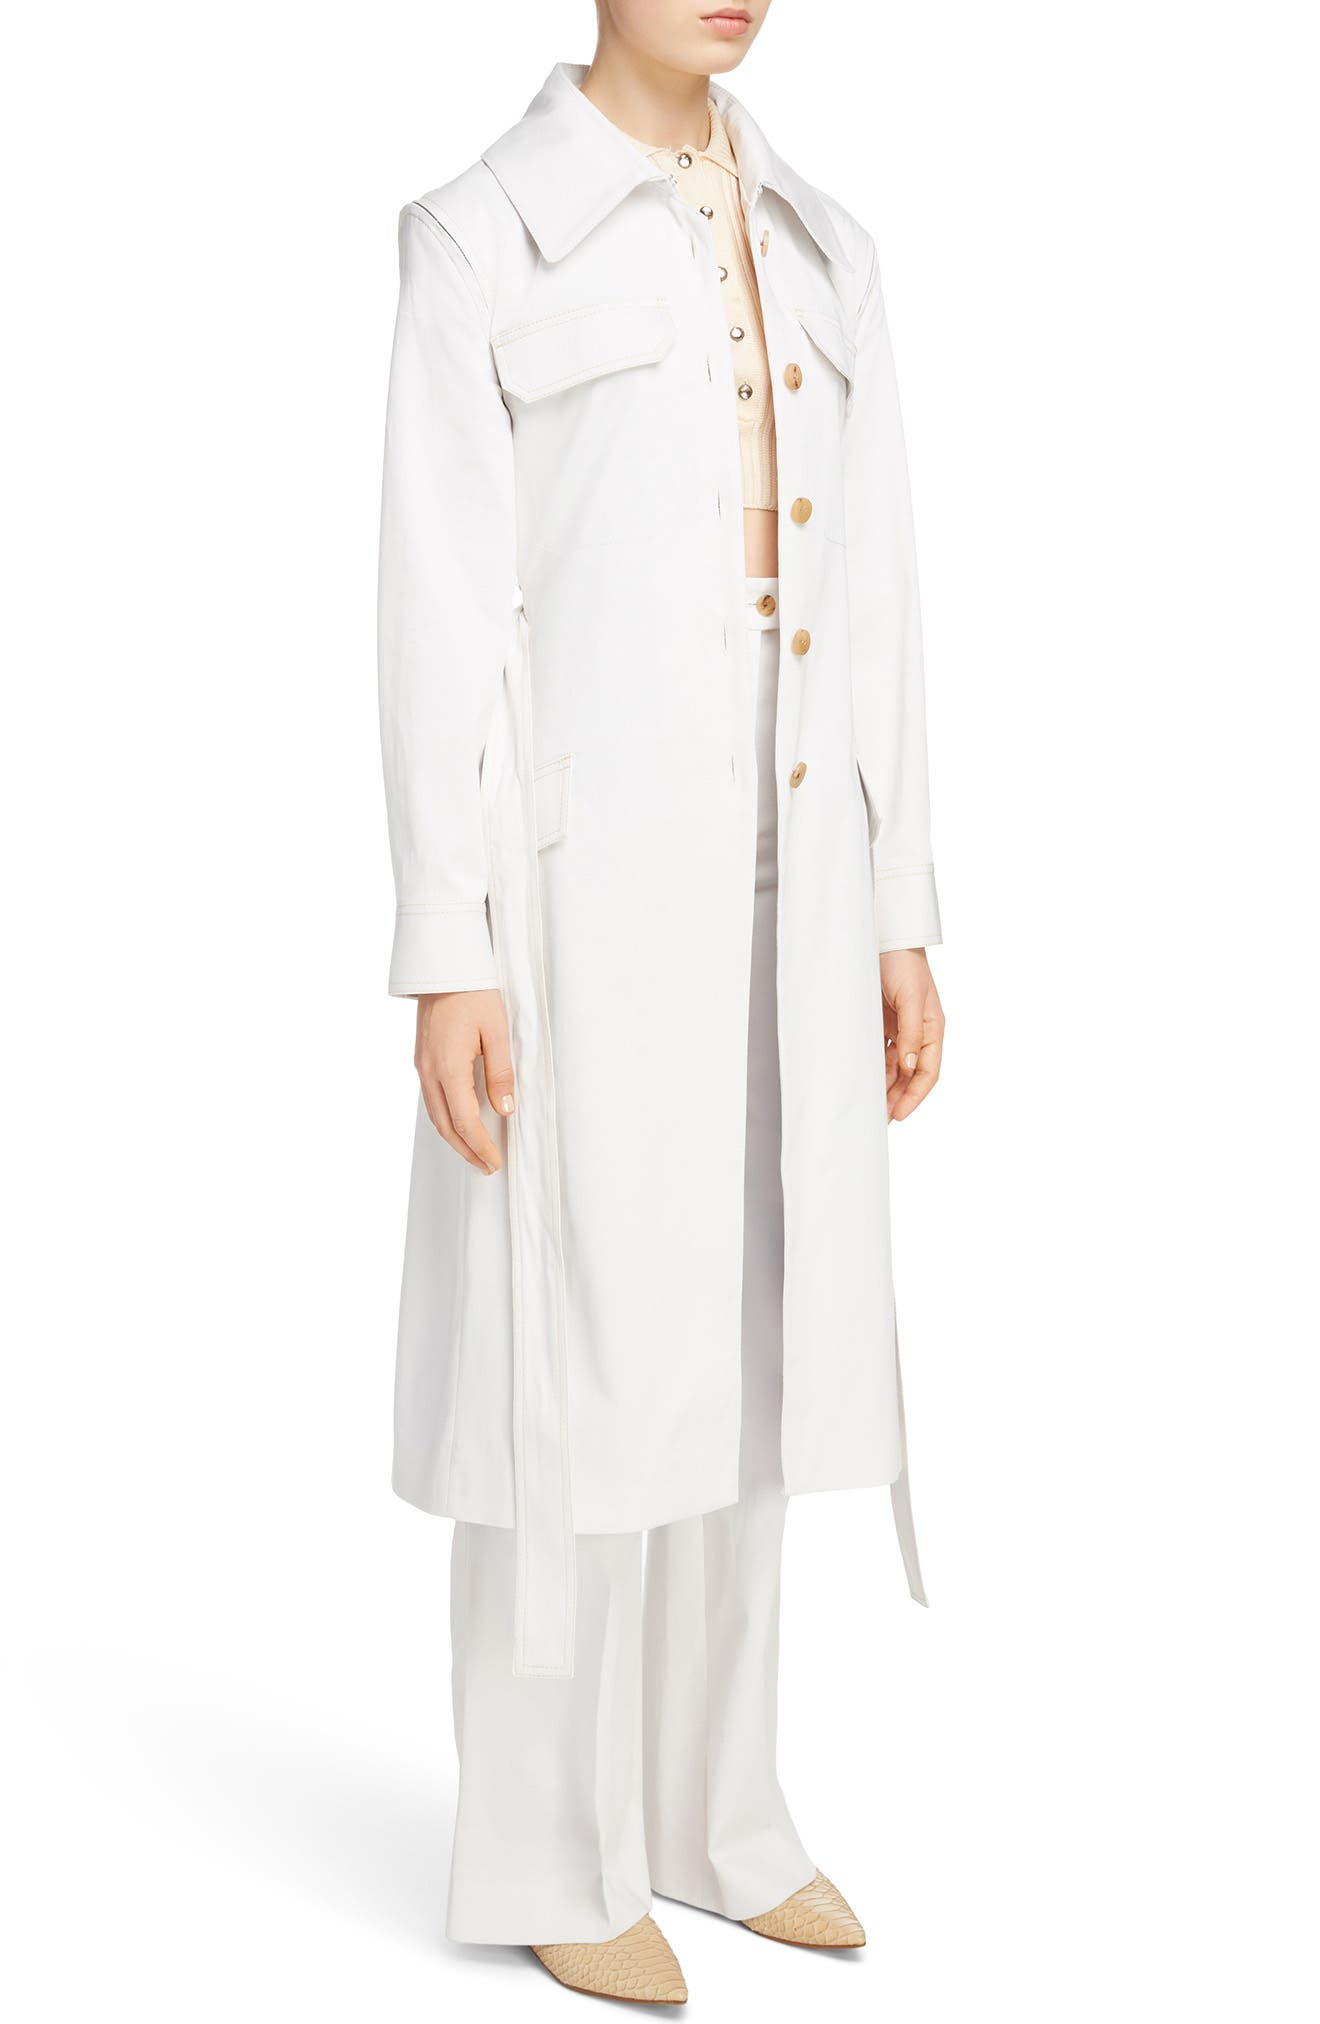 Olesia Removable Sleeve Belted Coat,                             Alternate thumbnail 4, color,                             Dirty White